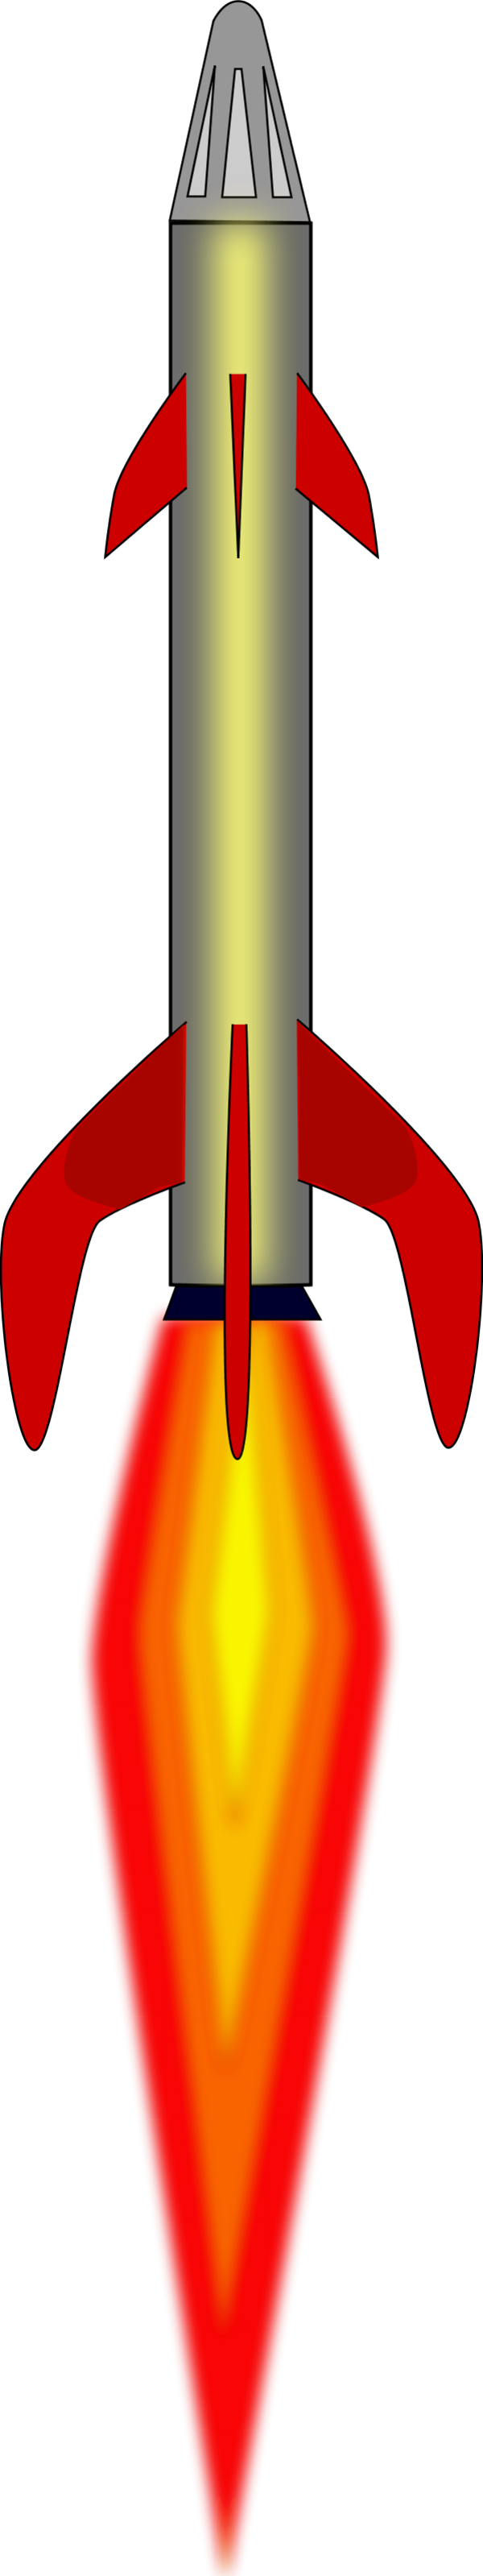 Red blast png. Missile images free download